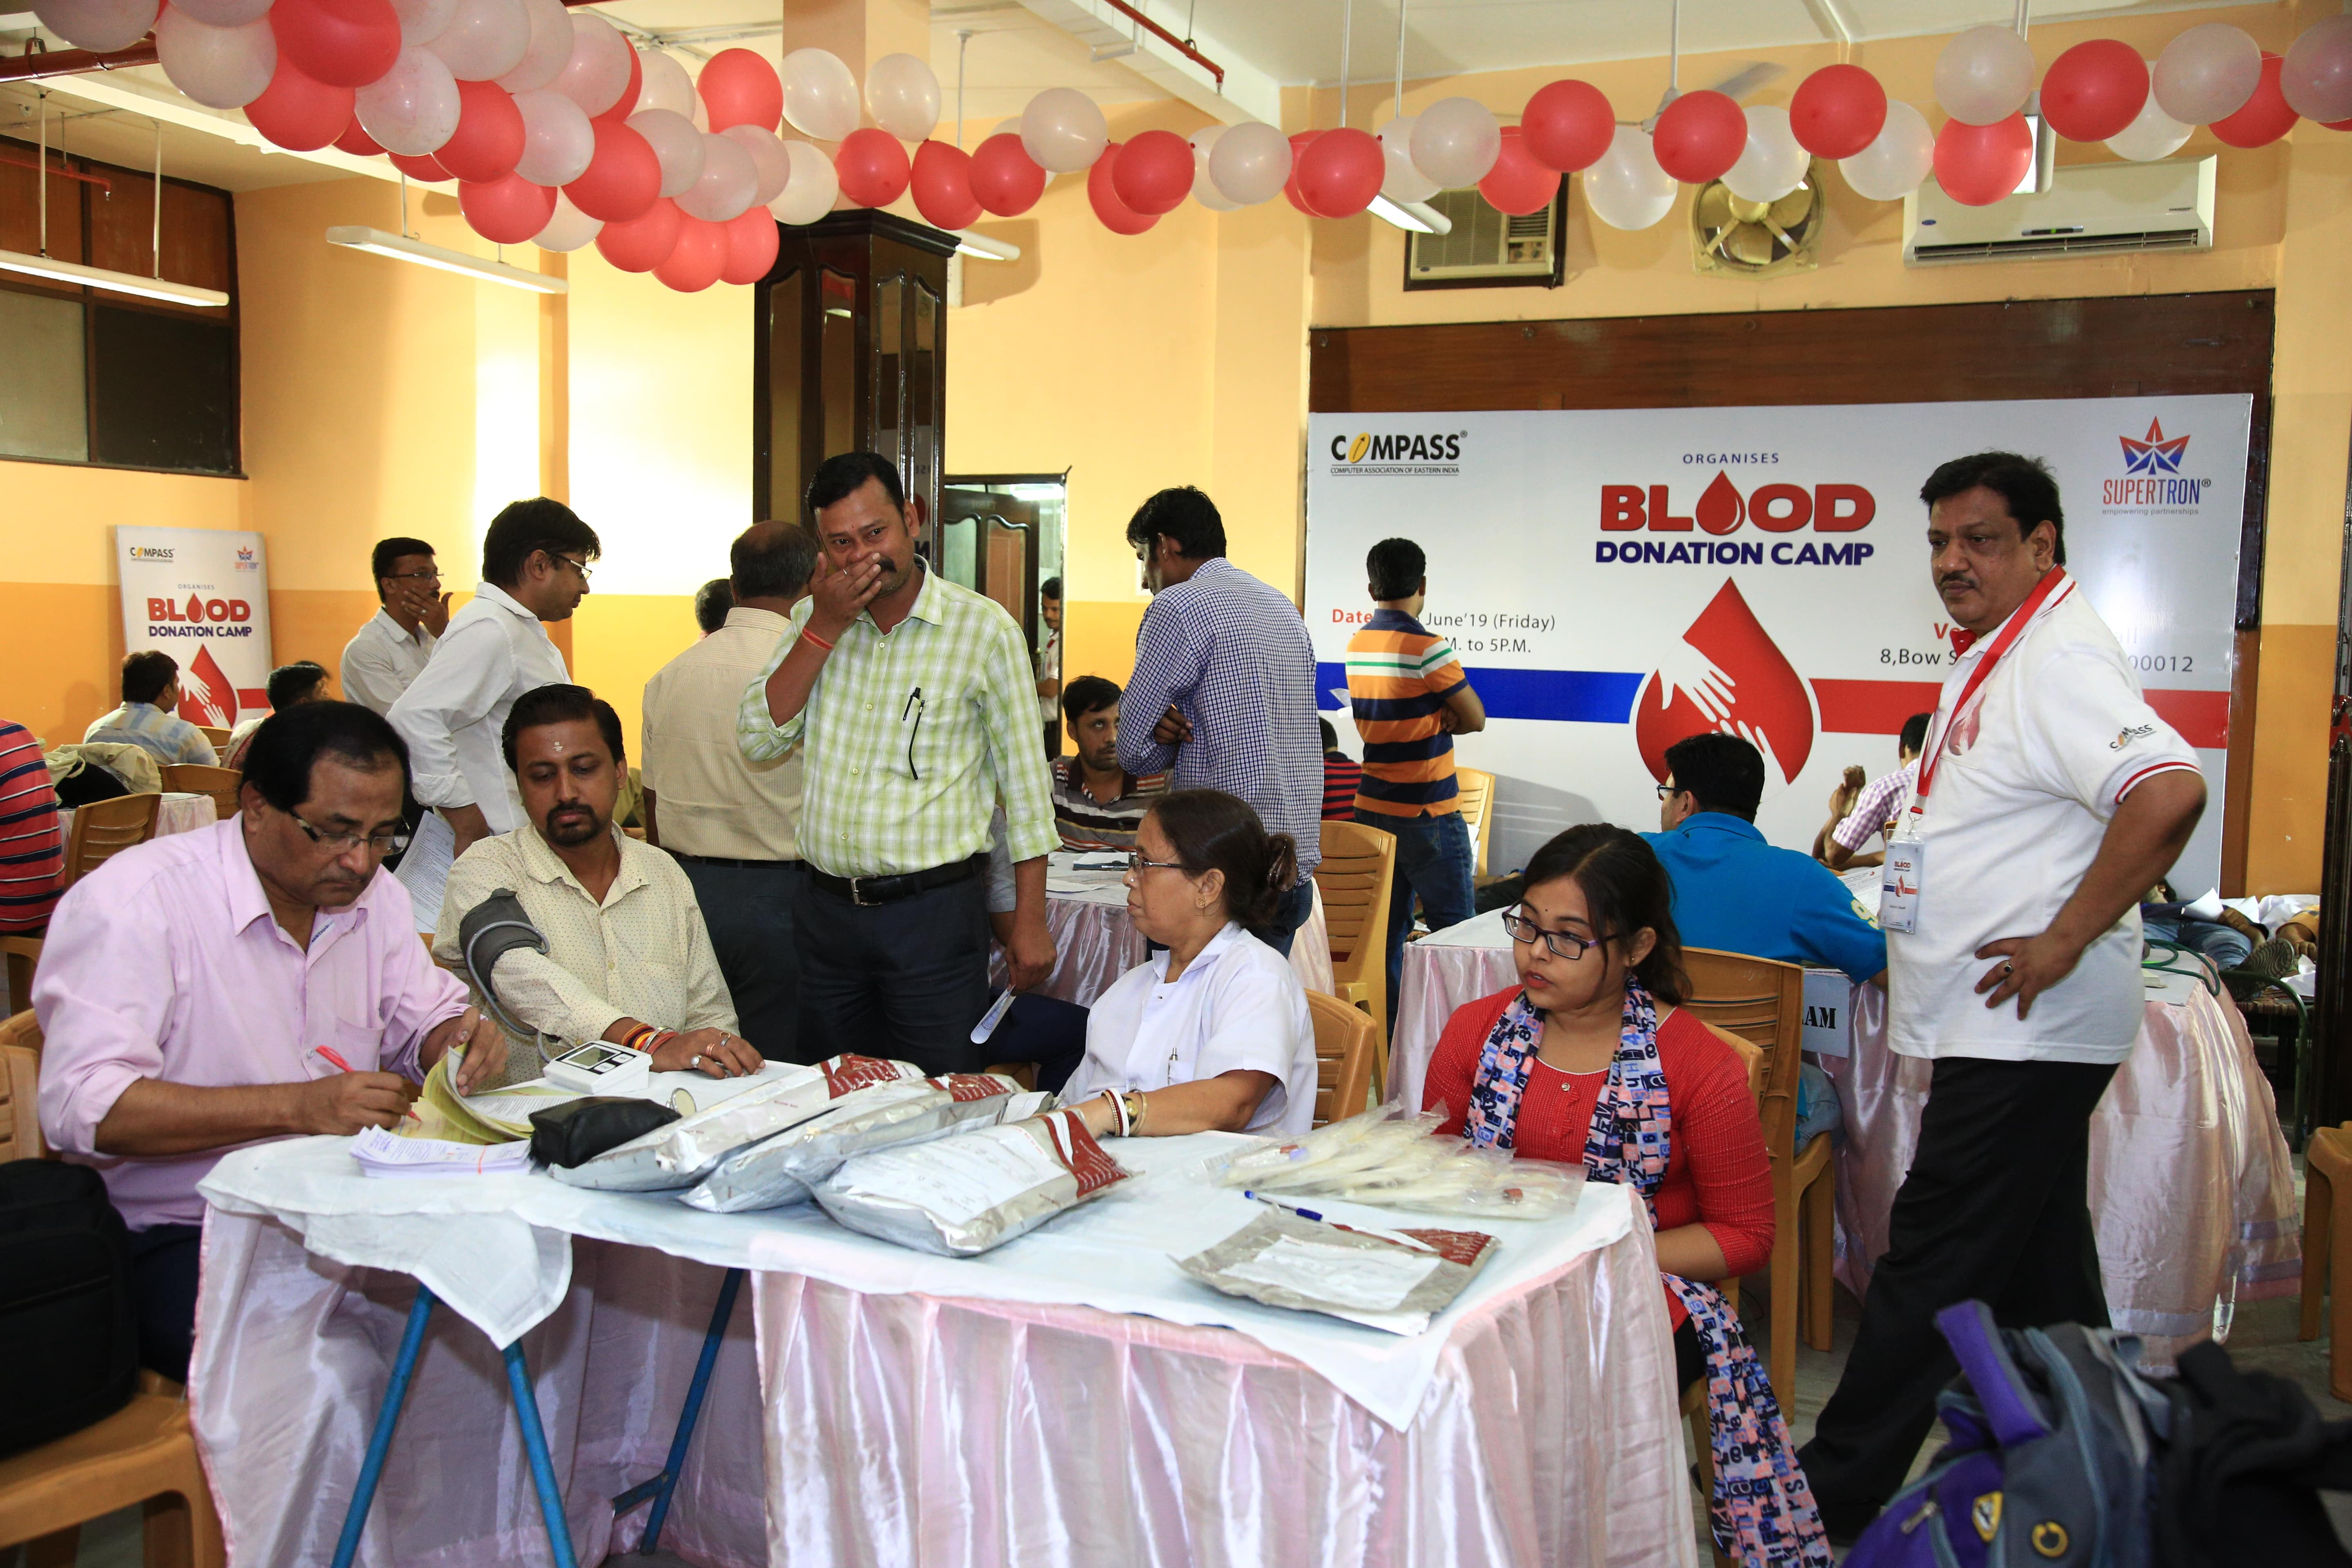 https://www.supertronindia.com/wp-content/uploads/2019/06/Blood-Donation-Camp-9-min.jpg